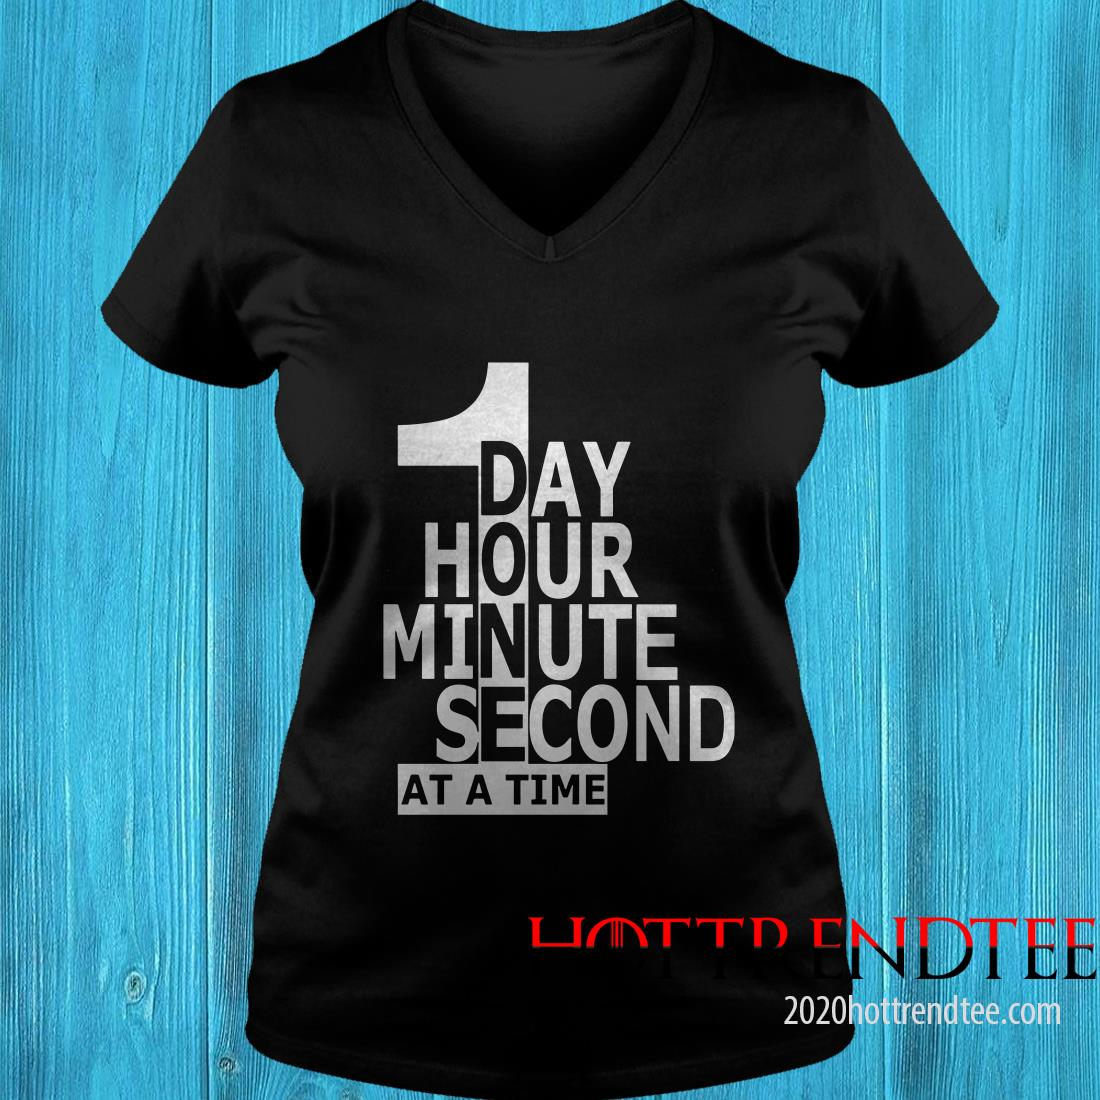 1 Day 1 Hour 1 Minute 1 Second At A Time Women's T-Shirt